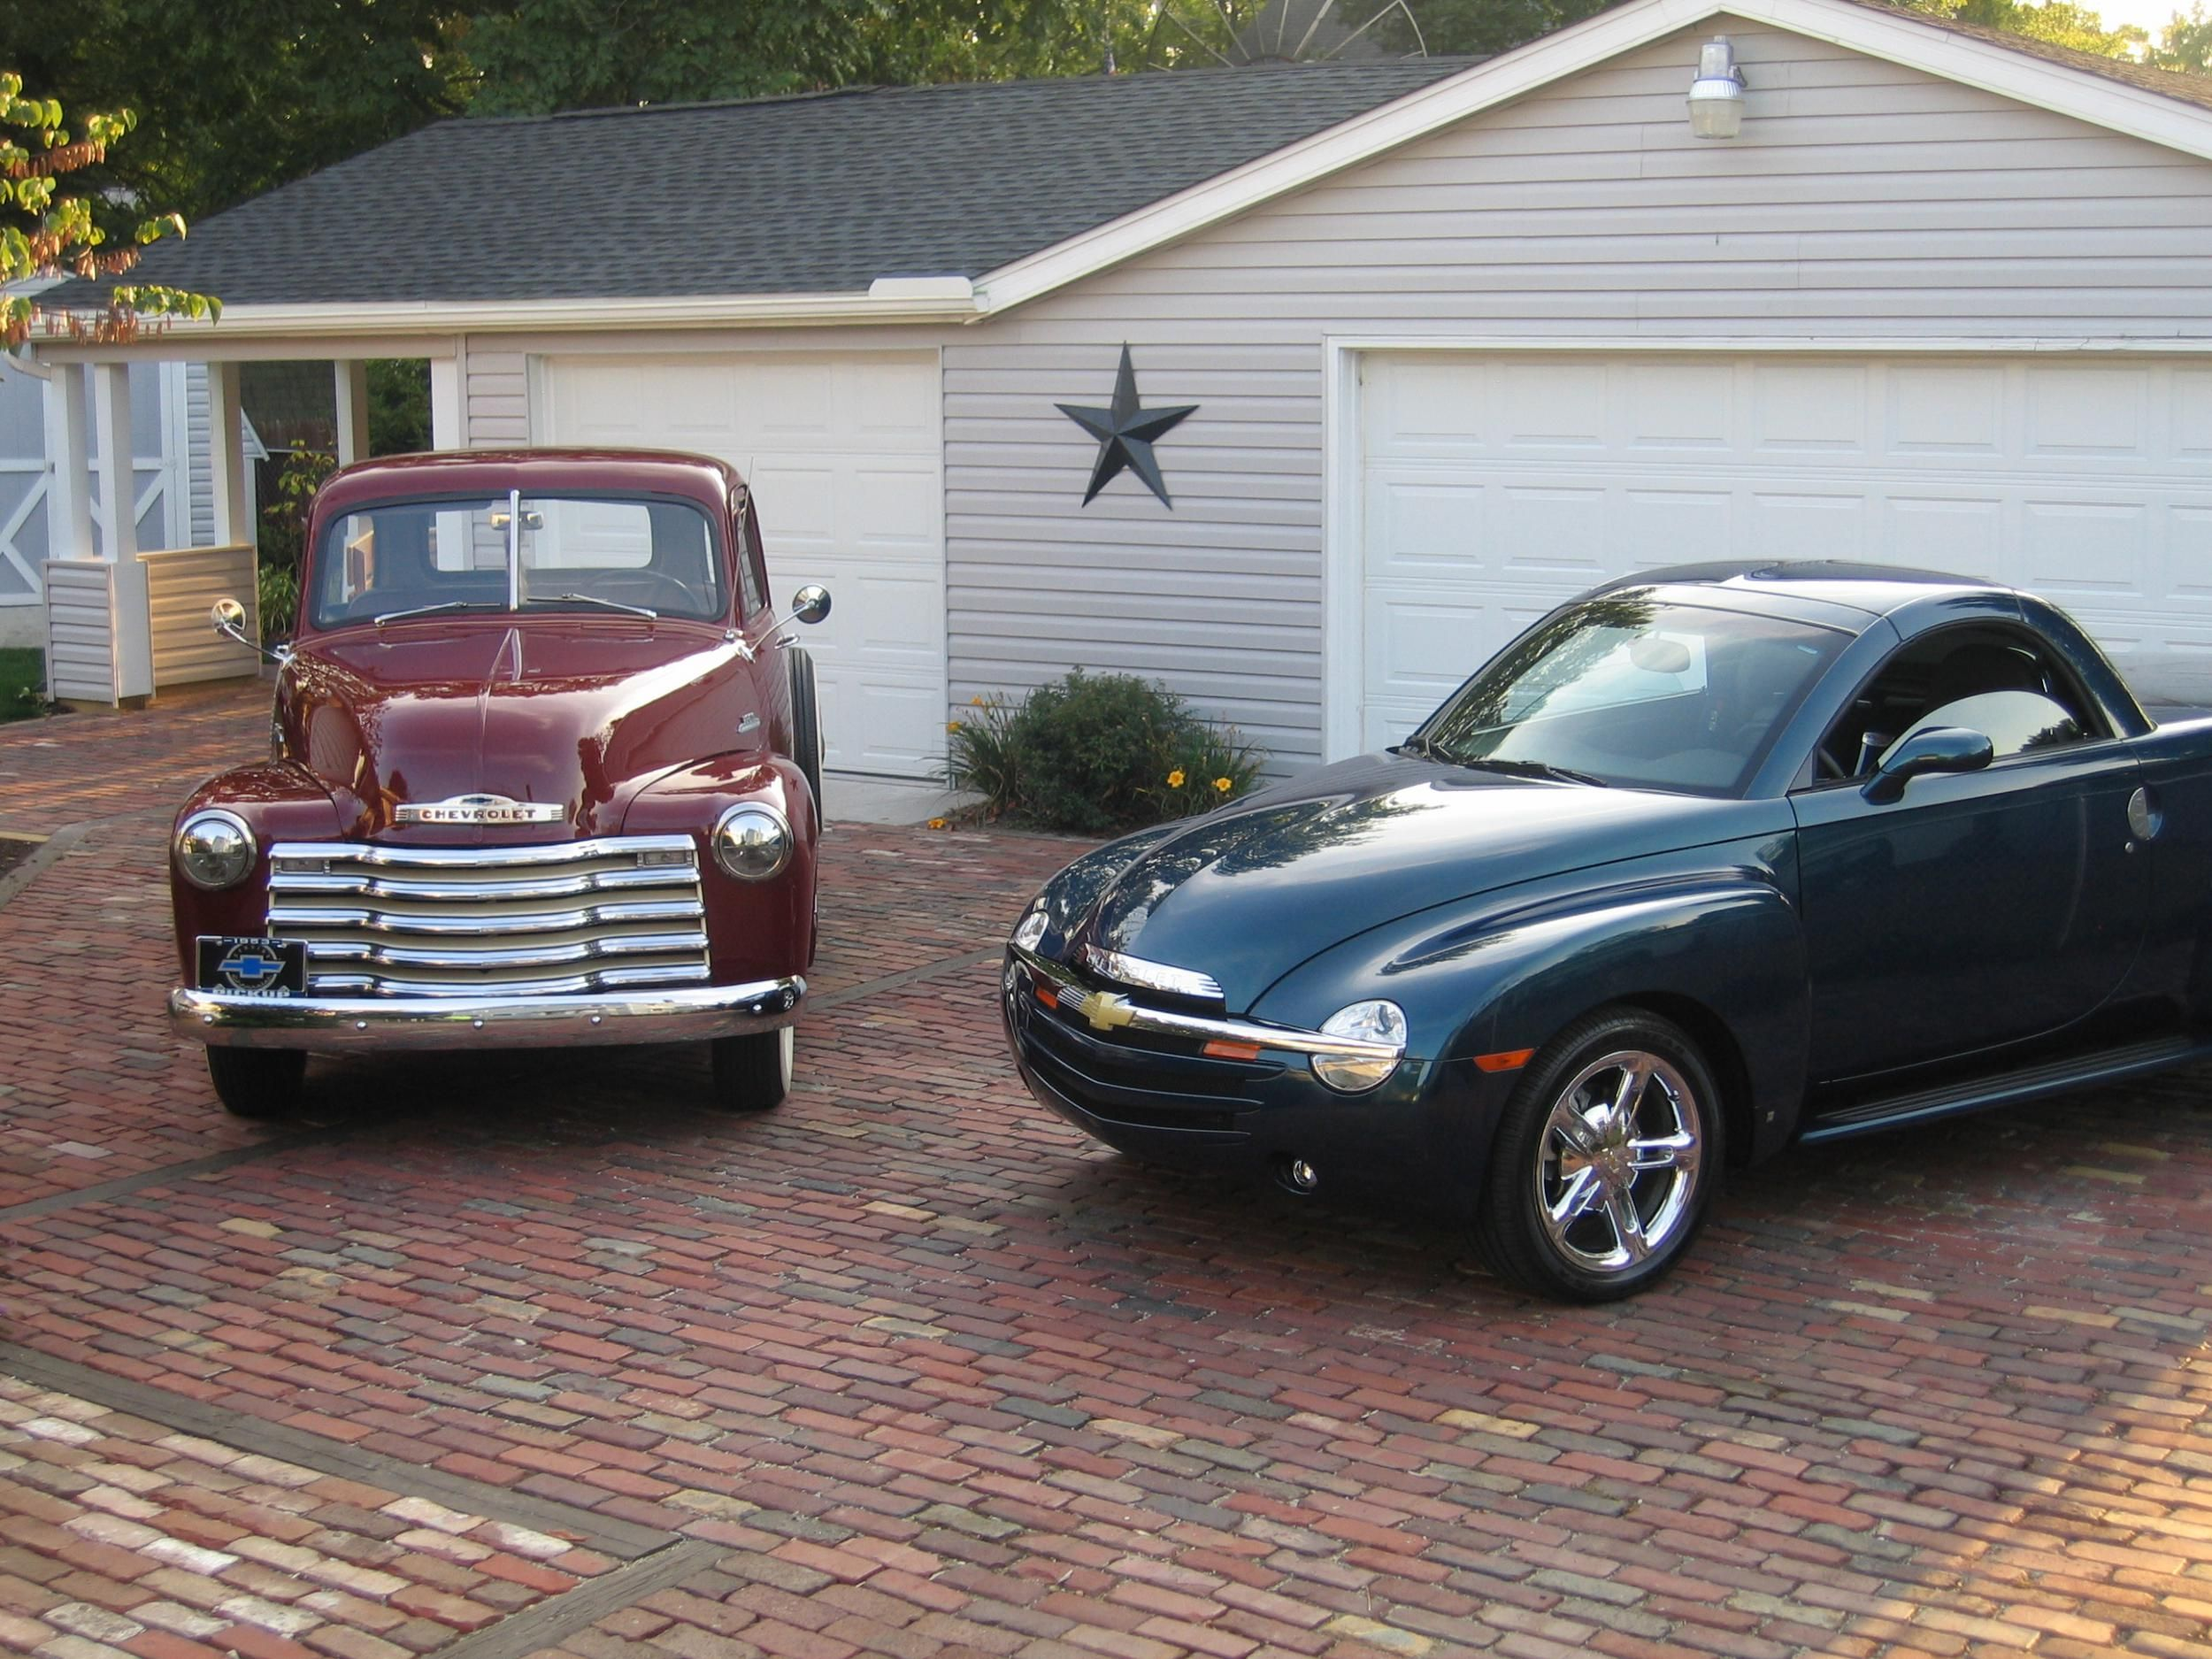 Chevy ssr images google search cars other vehicles i like pinterest chevy ssr chevy and chevrolet